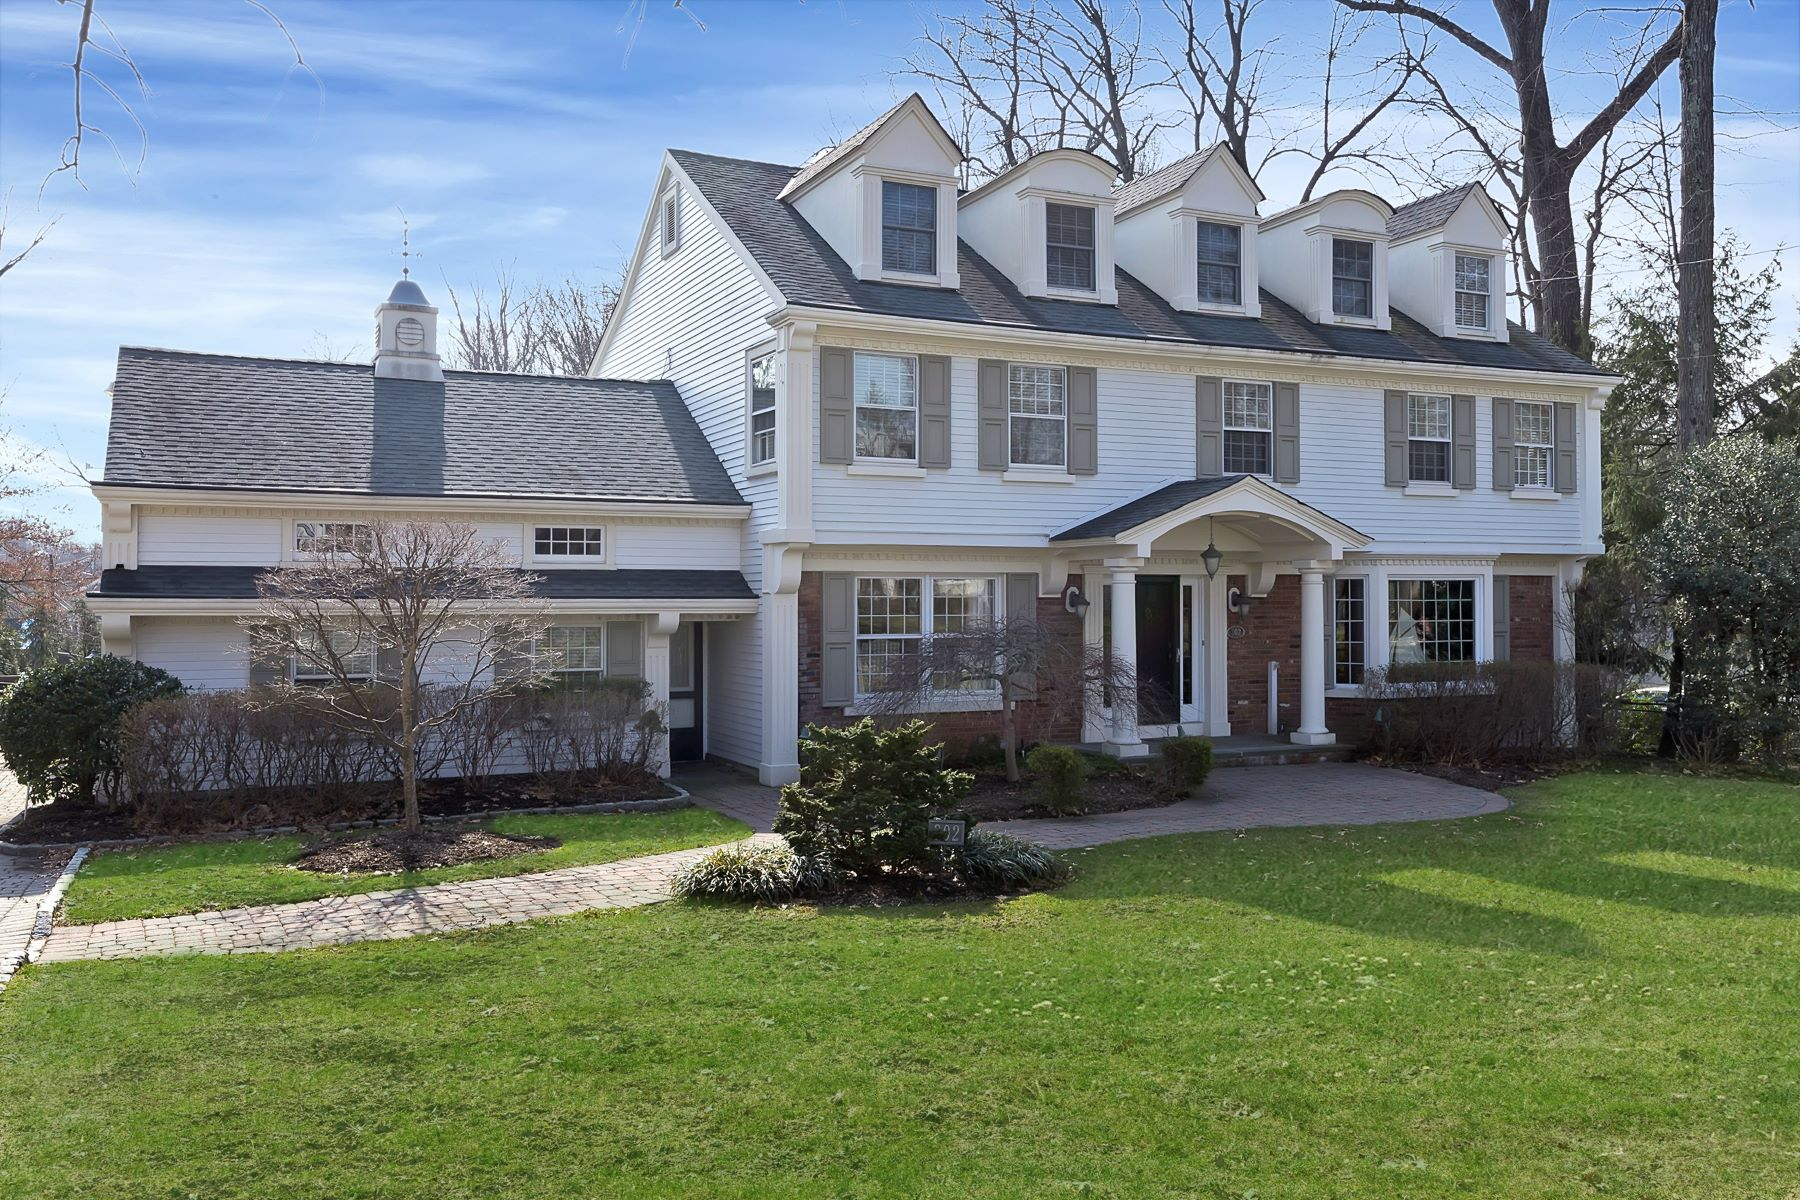 Maison unifamiliale pour l Vente à Sophisticated Center Hall Colonial In The Sought After Willard School Area 302 Bedford Road Ridgewood, New Jersey 07450 États-Unis